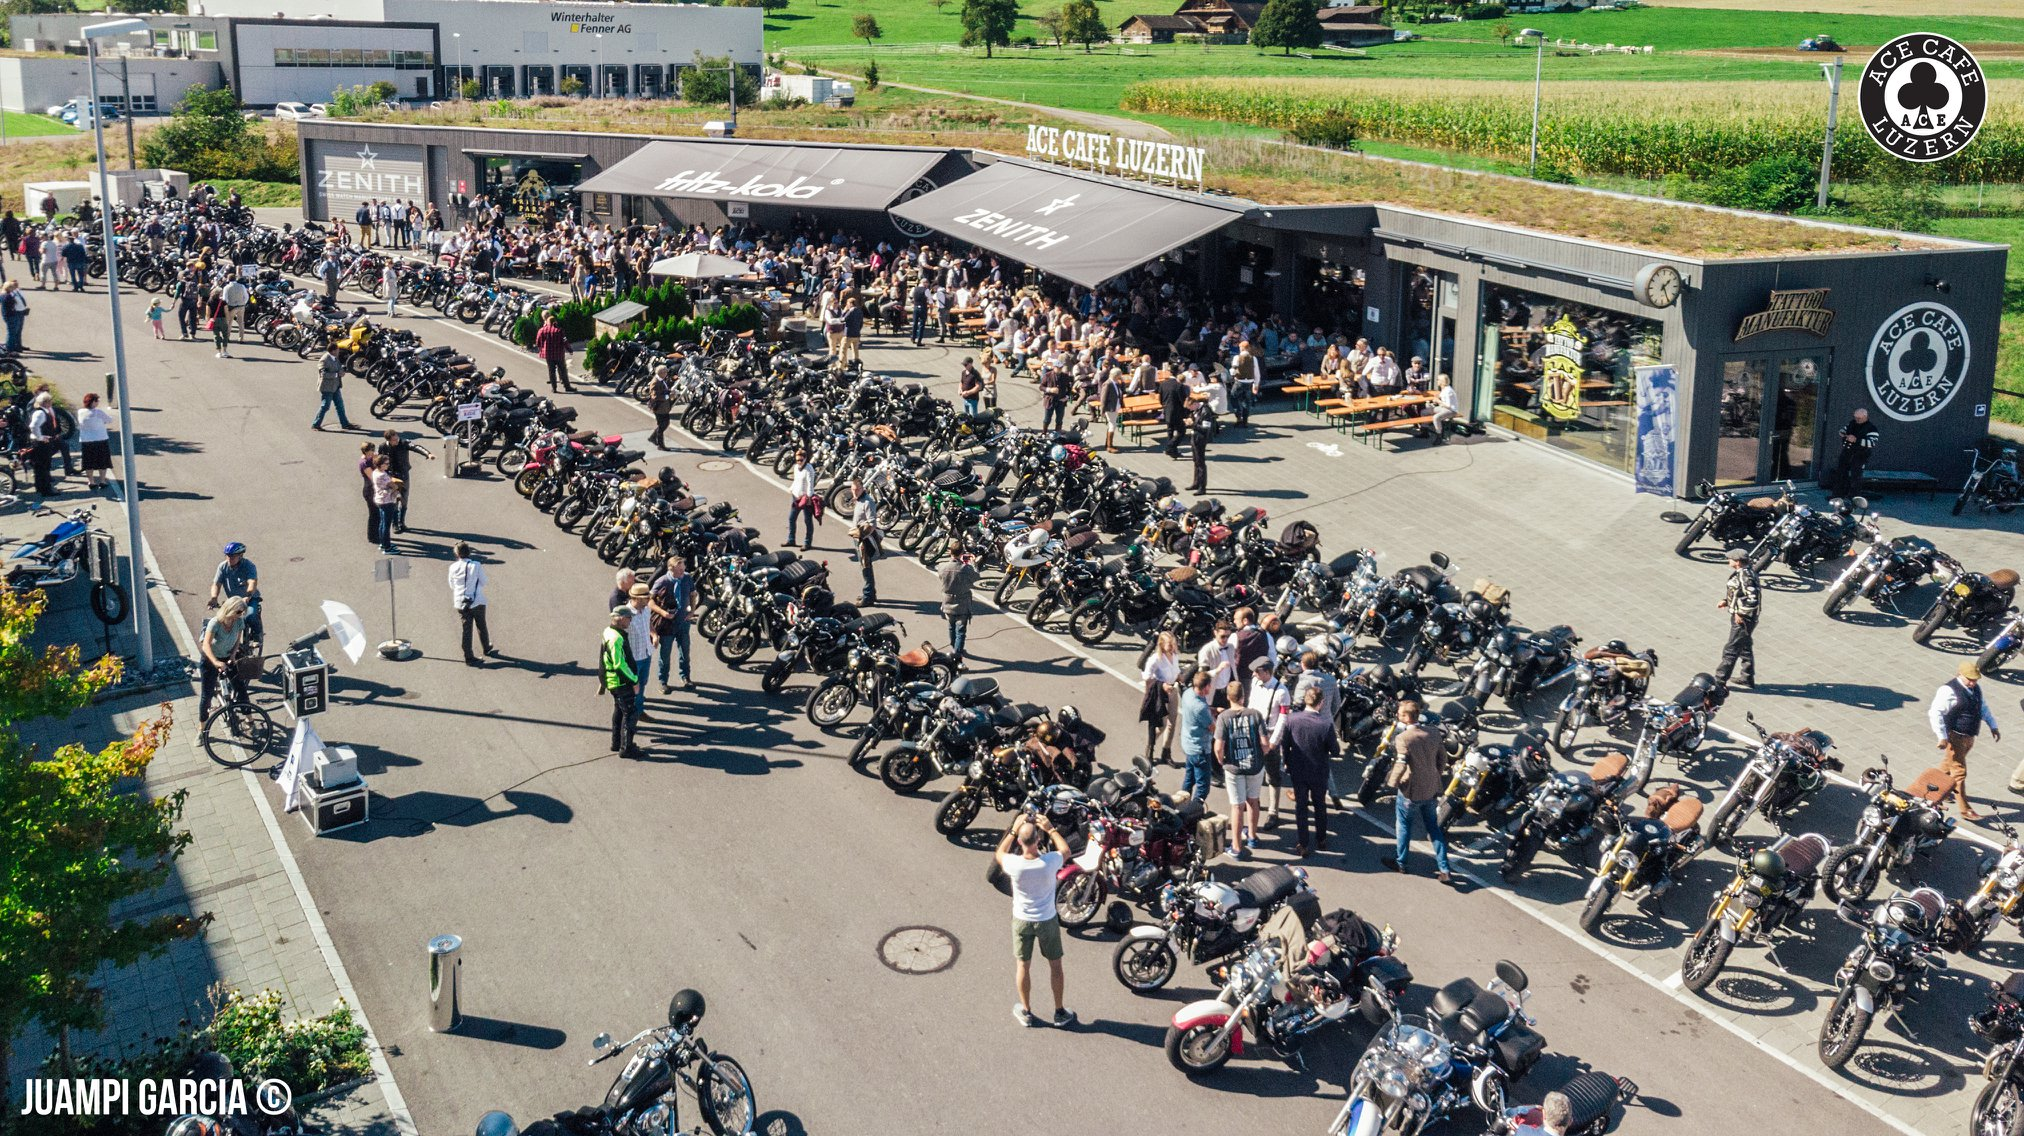 GENTLEMAN'S RIDE @ ACE LUZERN